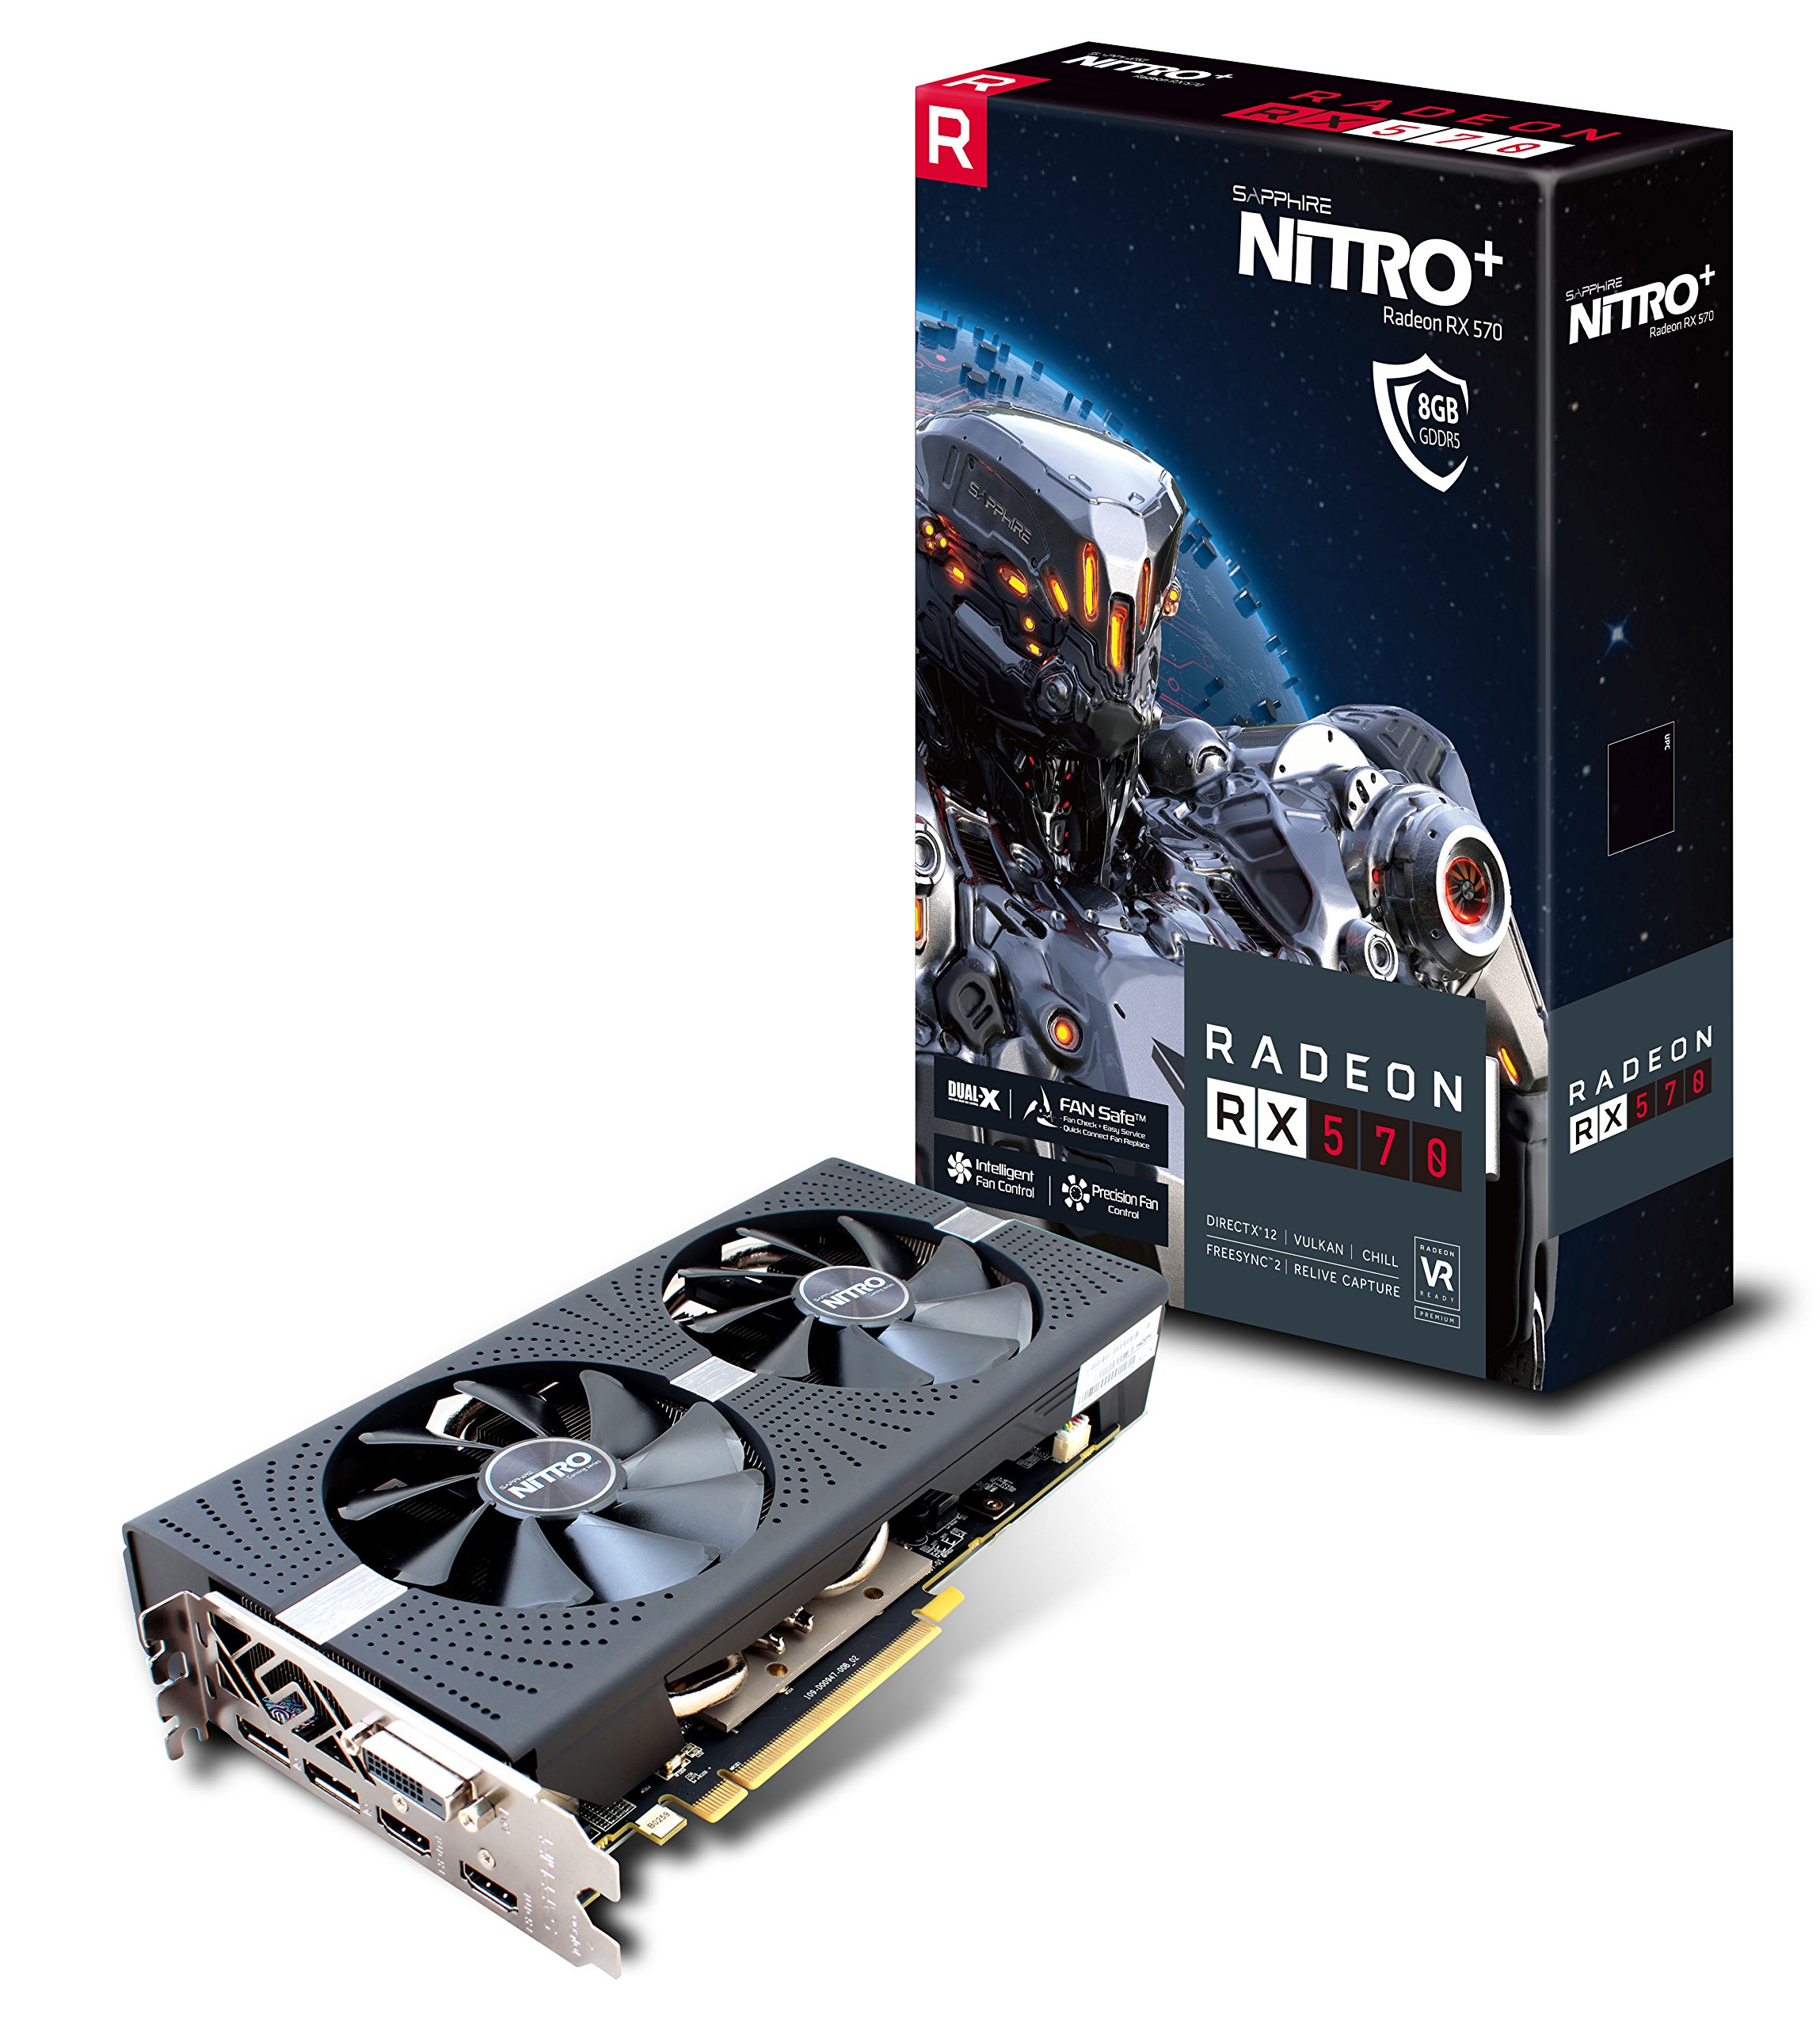 Sapphire 11266-09-20G Radeon NITRO+ RX 570 8GB GDDR5 DUAL HDMI / DVI-D / DUAL DP with backplate (UEFI) PCI-E Graphics Card by Sapphire Technology